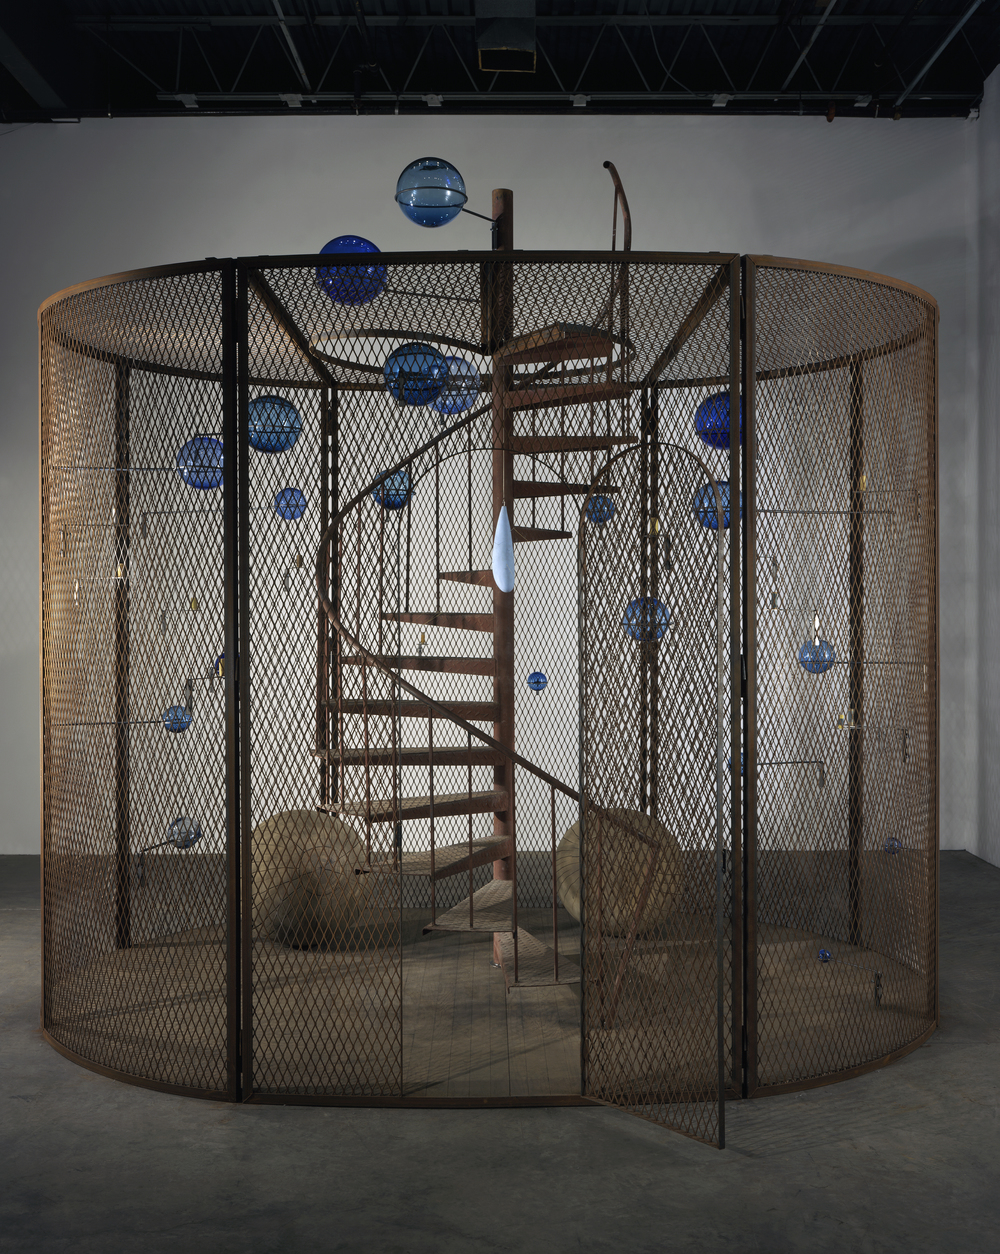 Cellule (La dernière montée) [Cell (The last climb)]  (2008)   Louise Bourgeois  Photo : Christopher Burke   © The Easton Foundation / VEGAP